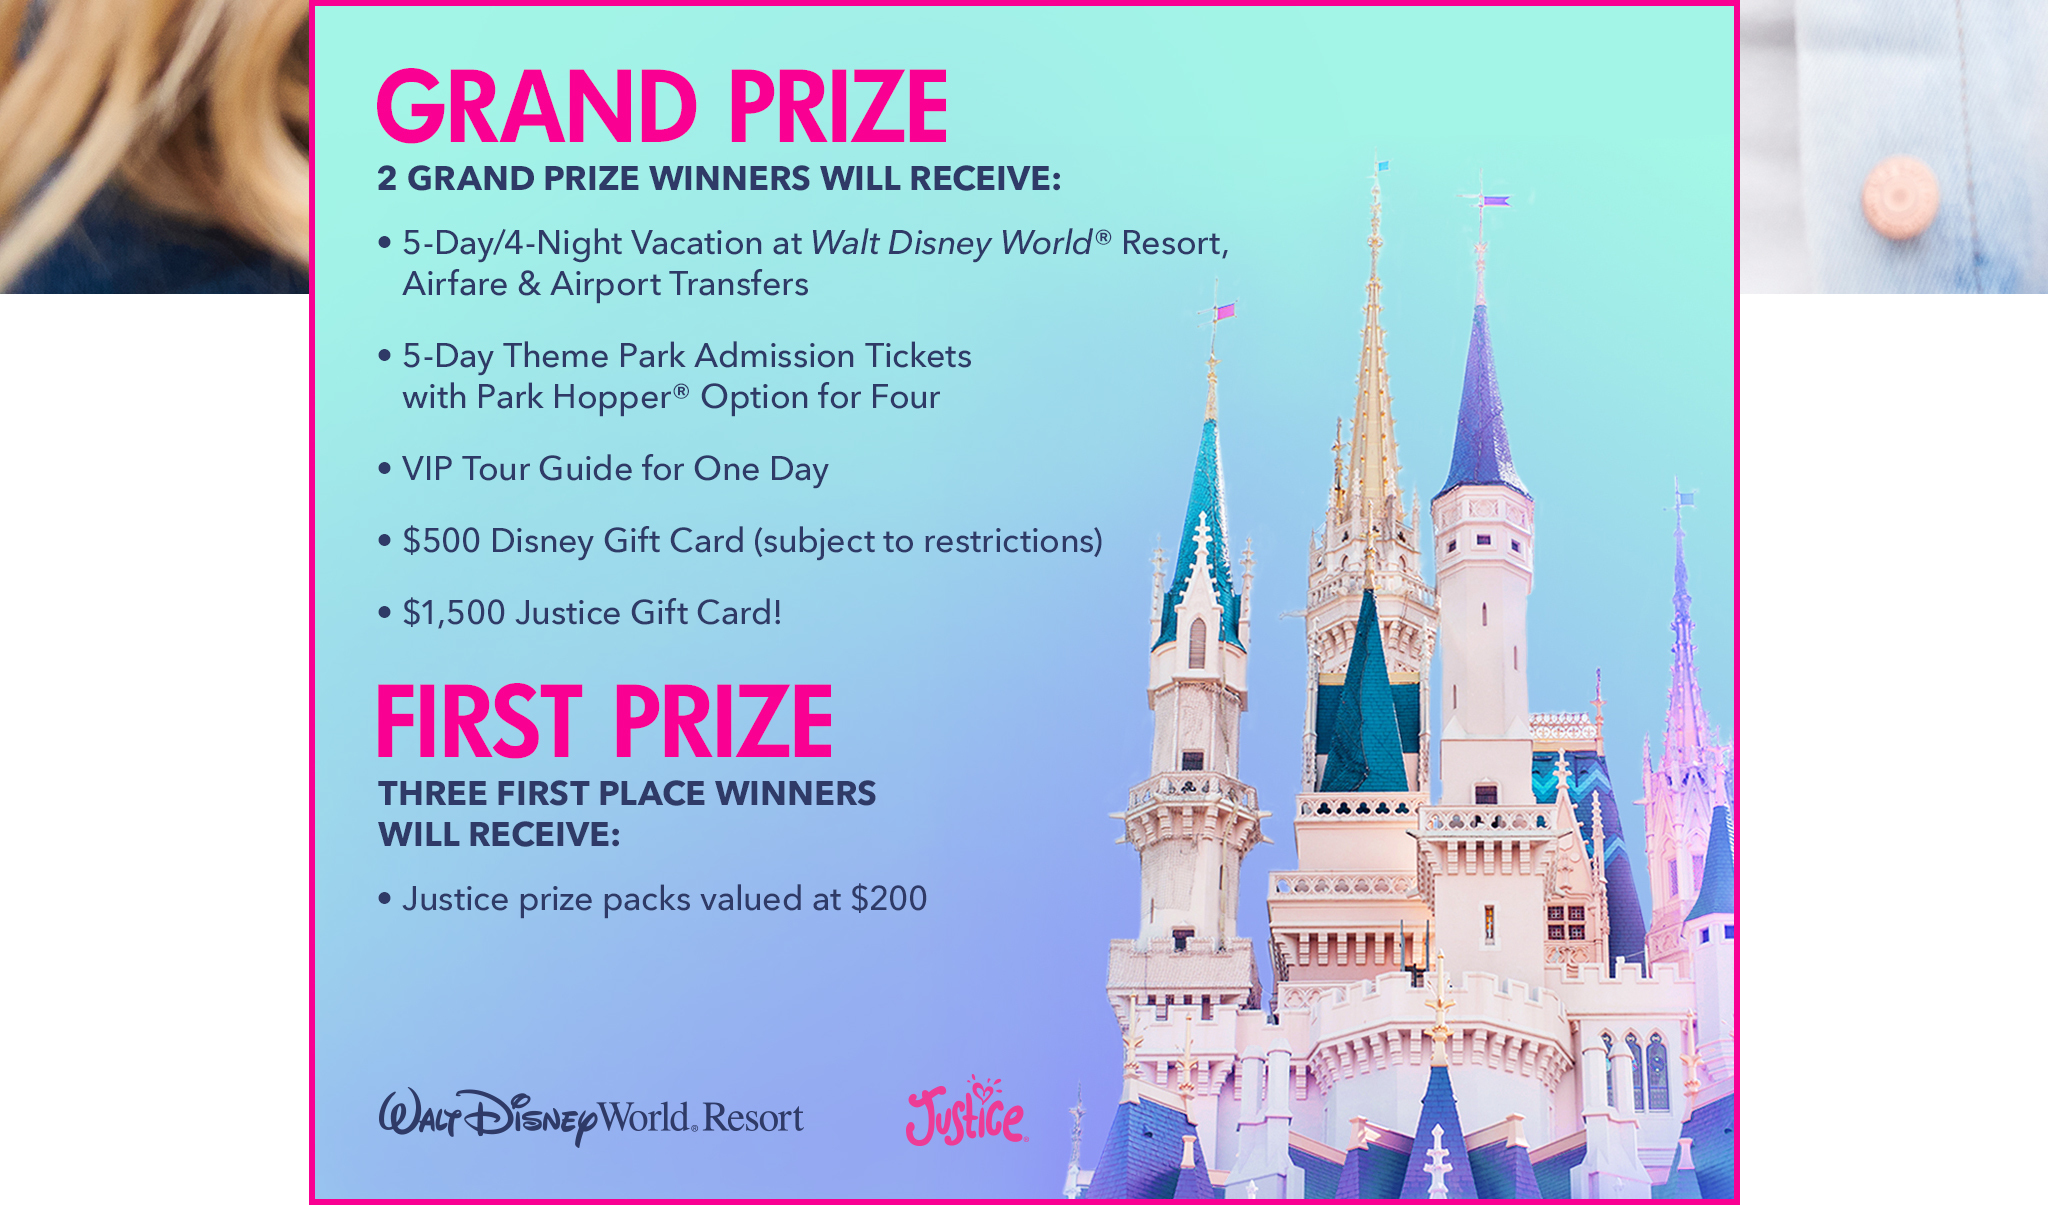 GRAND PRIZE | 2 Grand Prize Winners Will Receive: 5-Day/4-Night Vacation at Walt Disney World Resort®, Airfare & Airport Transfers | 5-Day Theme Park Admission Tickets with Park Hopper® Option for Four | VIP Tour Guide for One Day | $500 Disney Gift Card (subject to restrictions) | $1,500 Justice Gift Card! | FIRST PRIZE | Three First Place Winners Will Receive: Justice prize packs valued at $200. | Justice | Walt Disney World Resort®